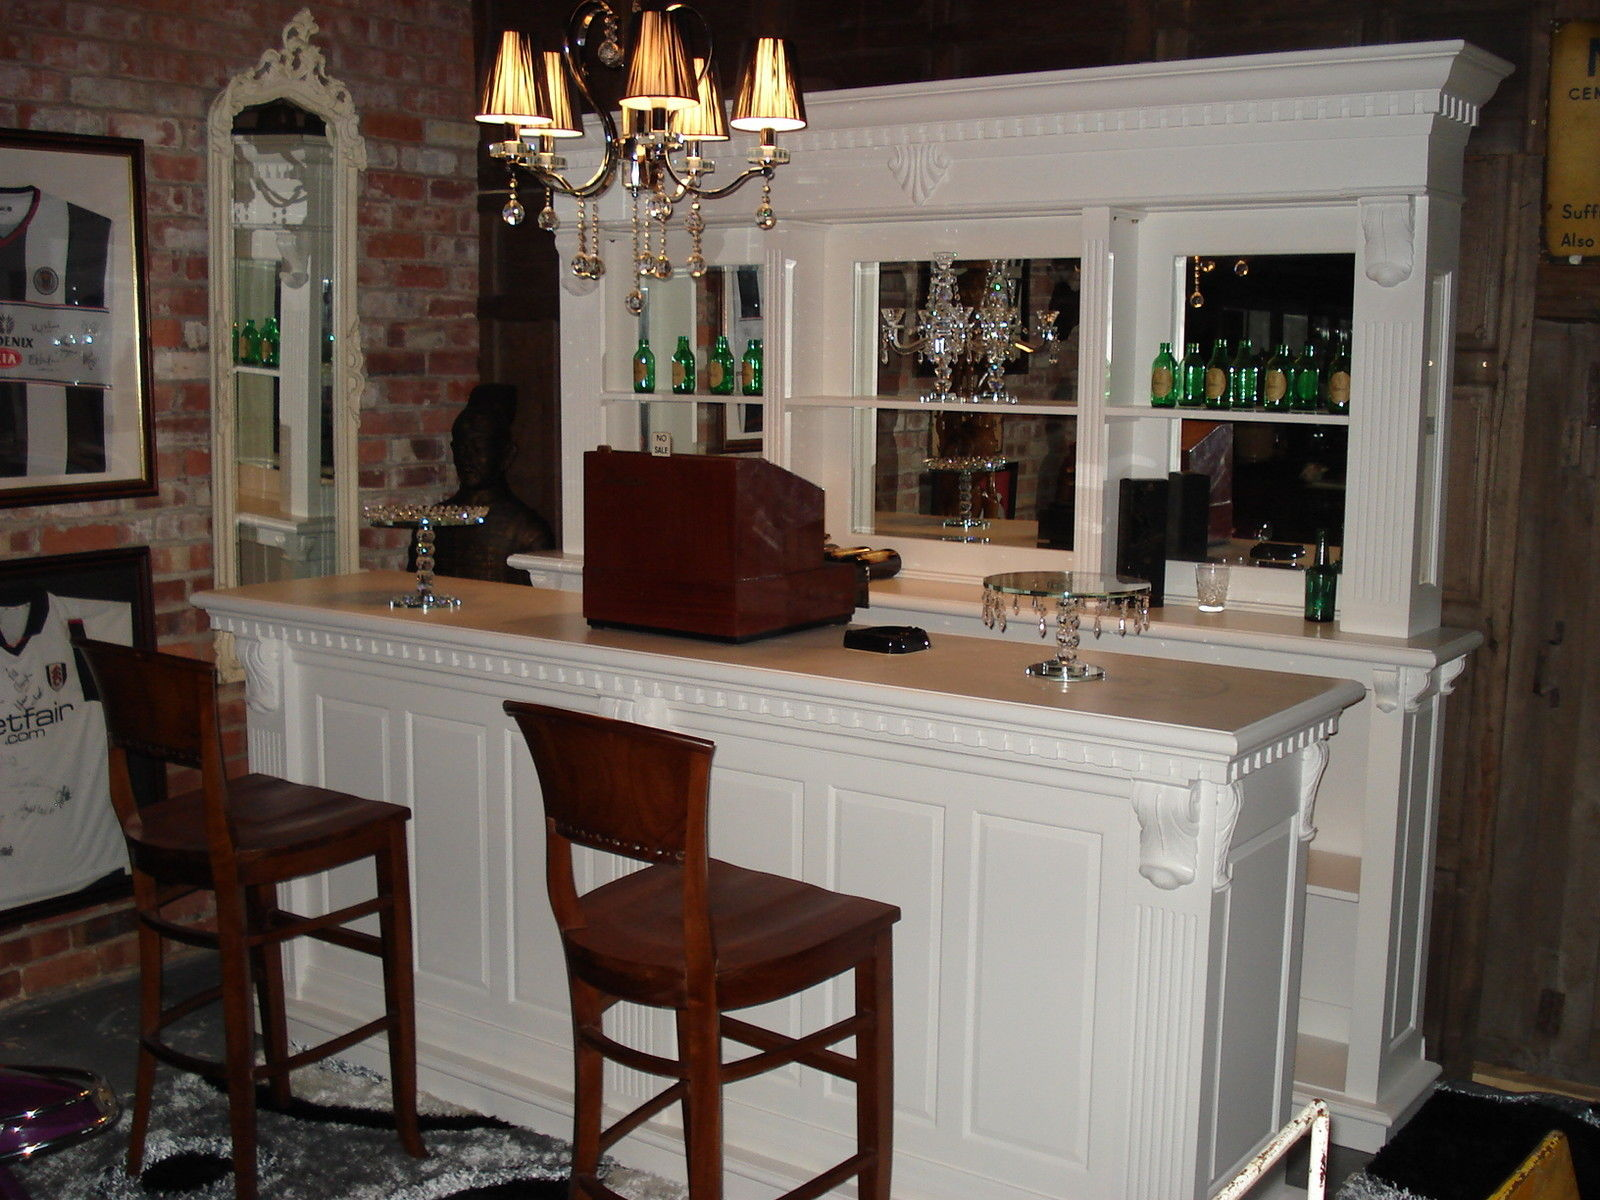 Picture of: 2 6m White Front Counter Mirrored Back Bar John Cowell Limited